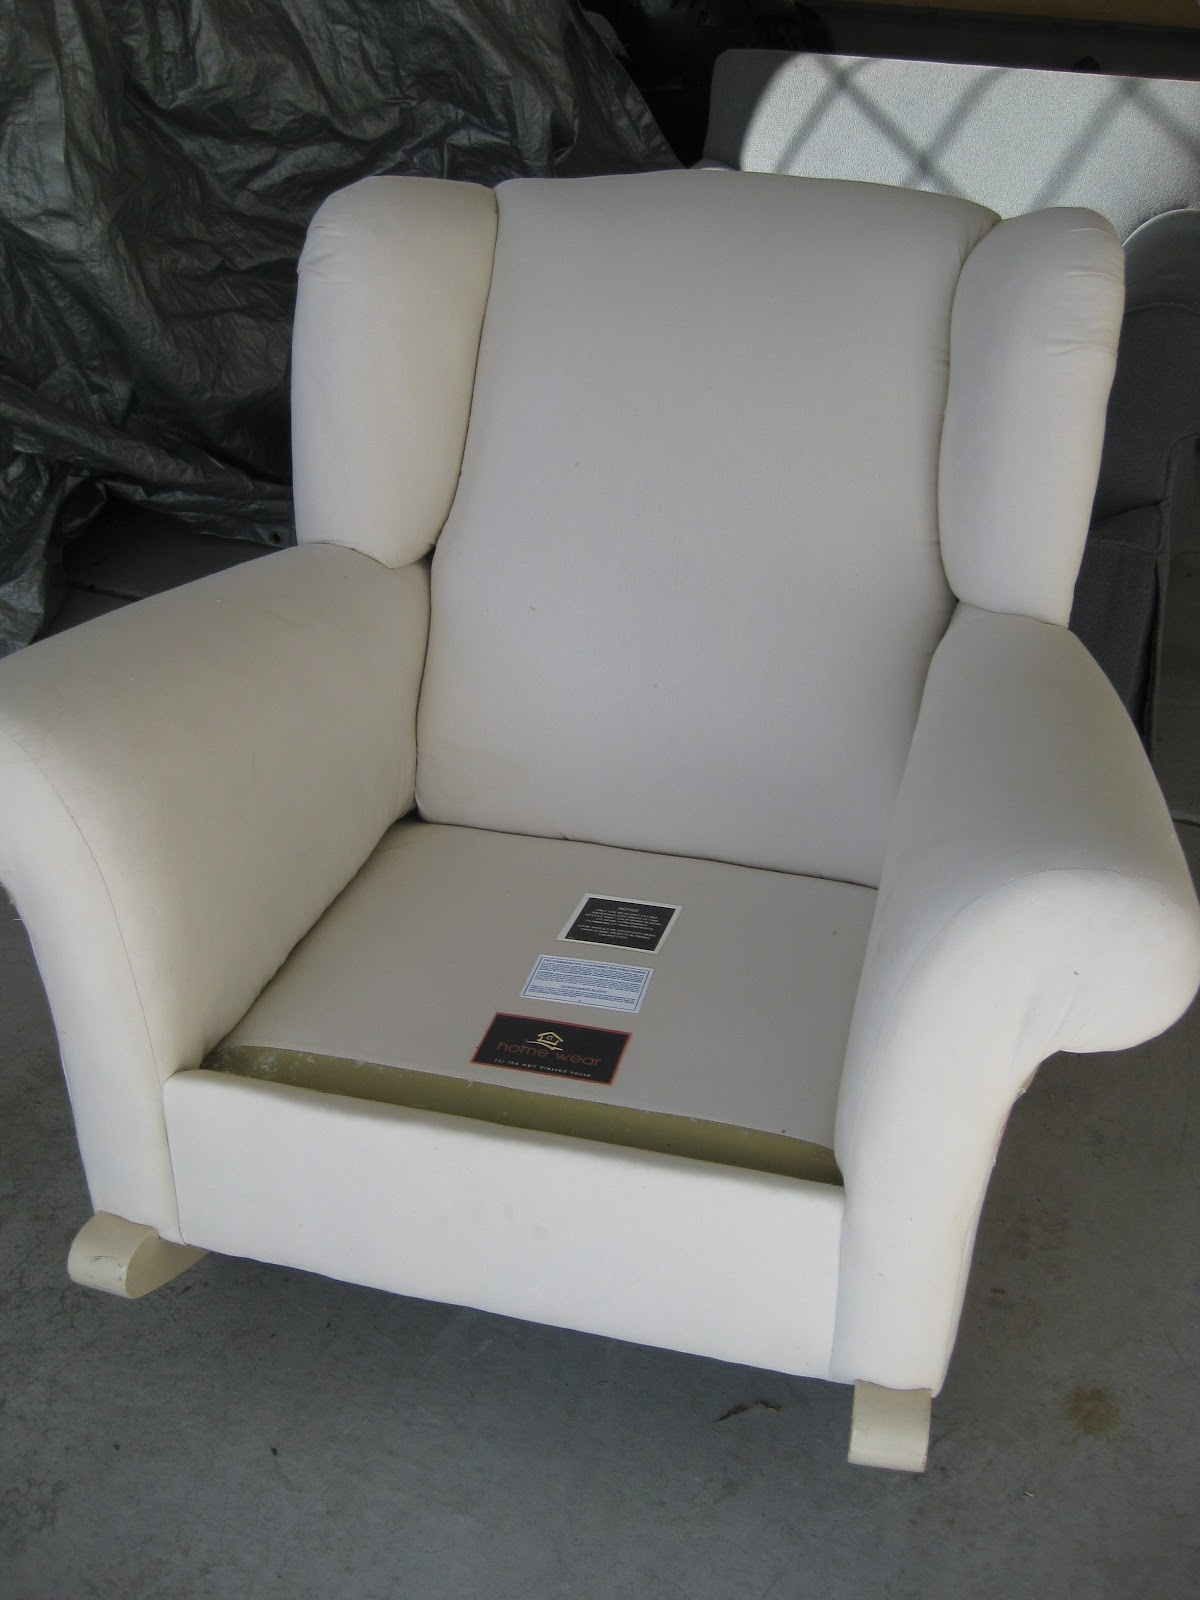 Pottery Barn Child Chair Covers Stool Height Custom Slipcovers By Shelley Upholstered Rocking